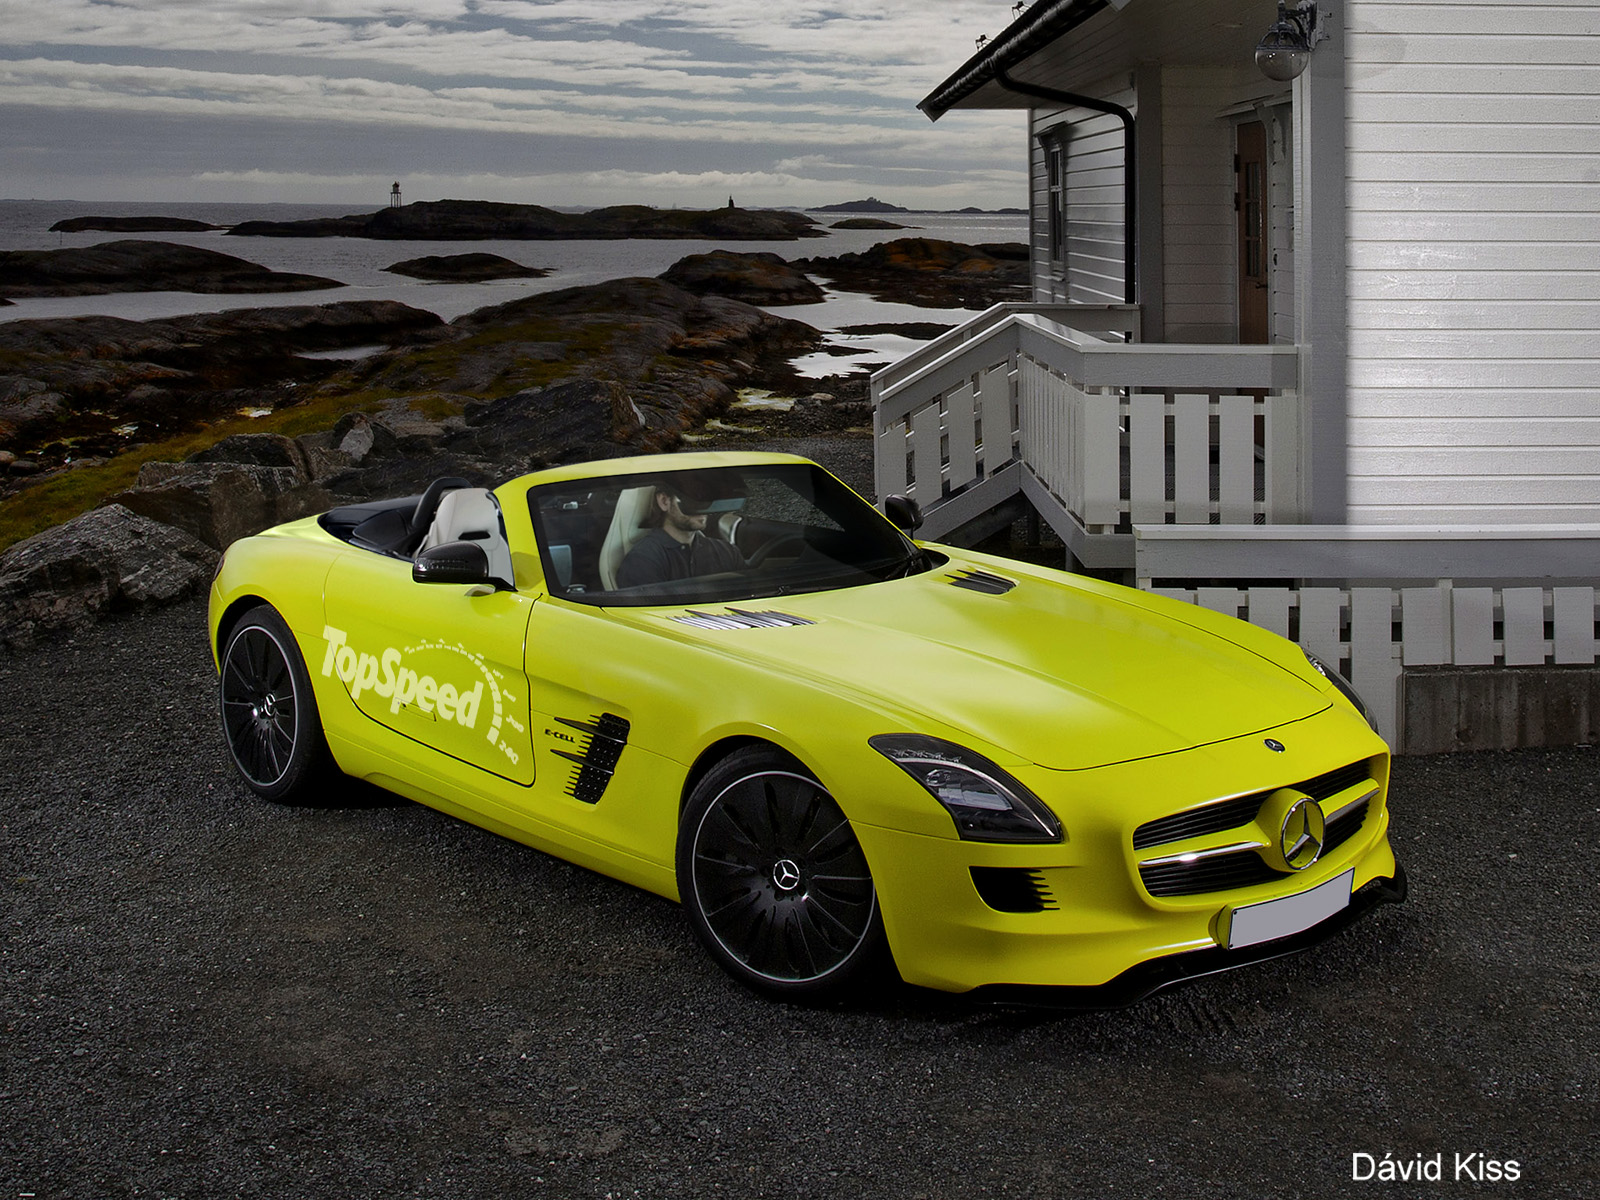 2015 mercedes benz sls amg e cell roadster review for 2015 mercedes benz sls amg convertible